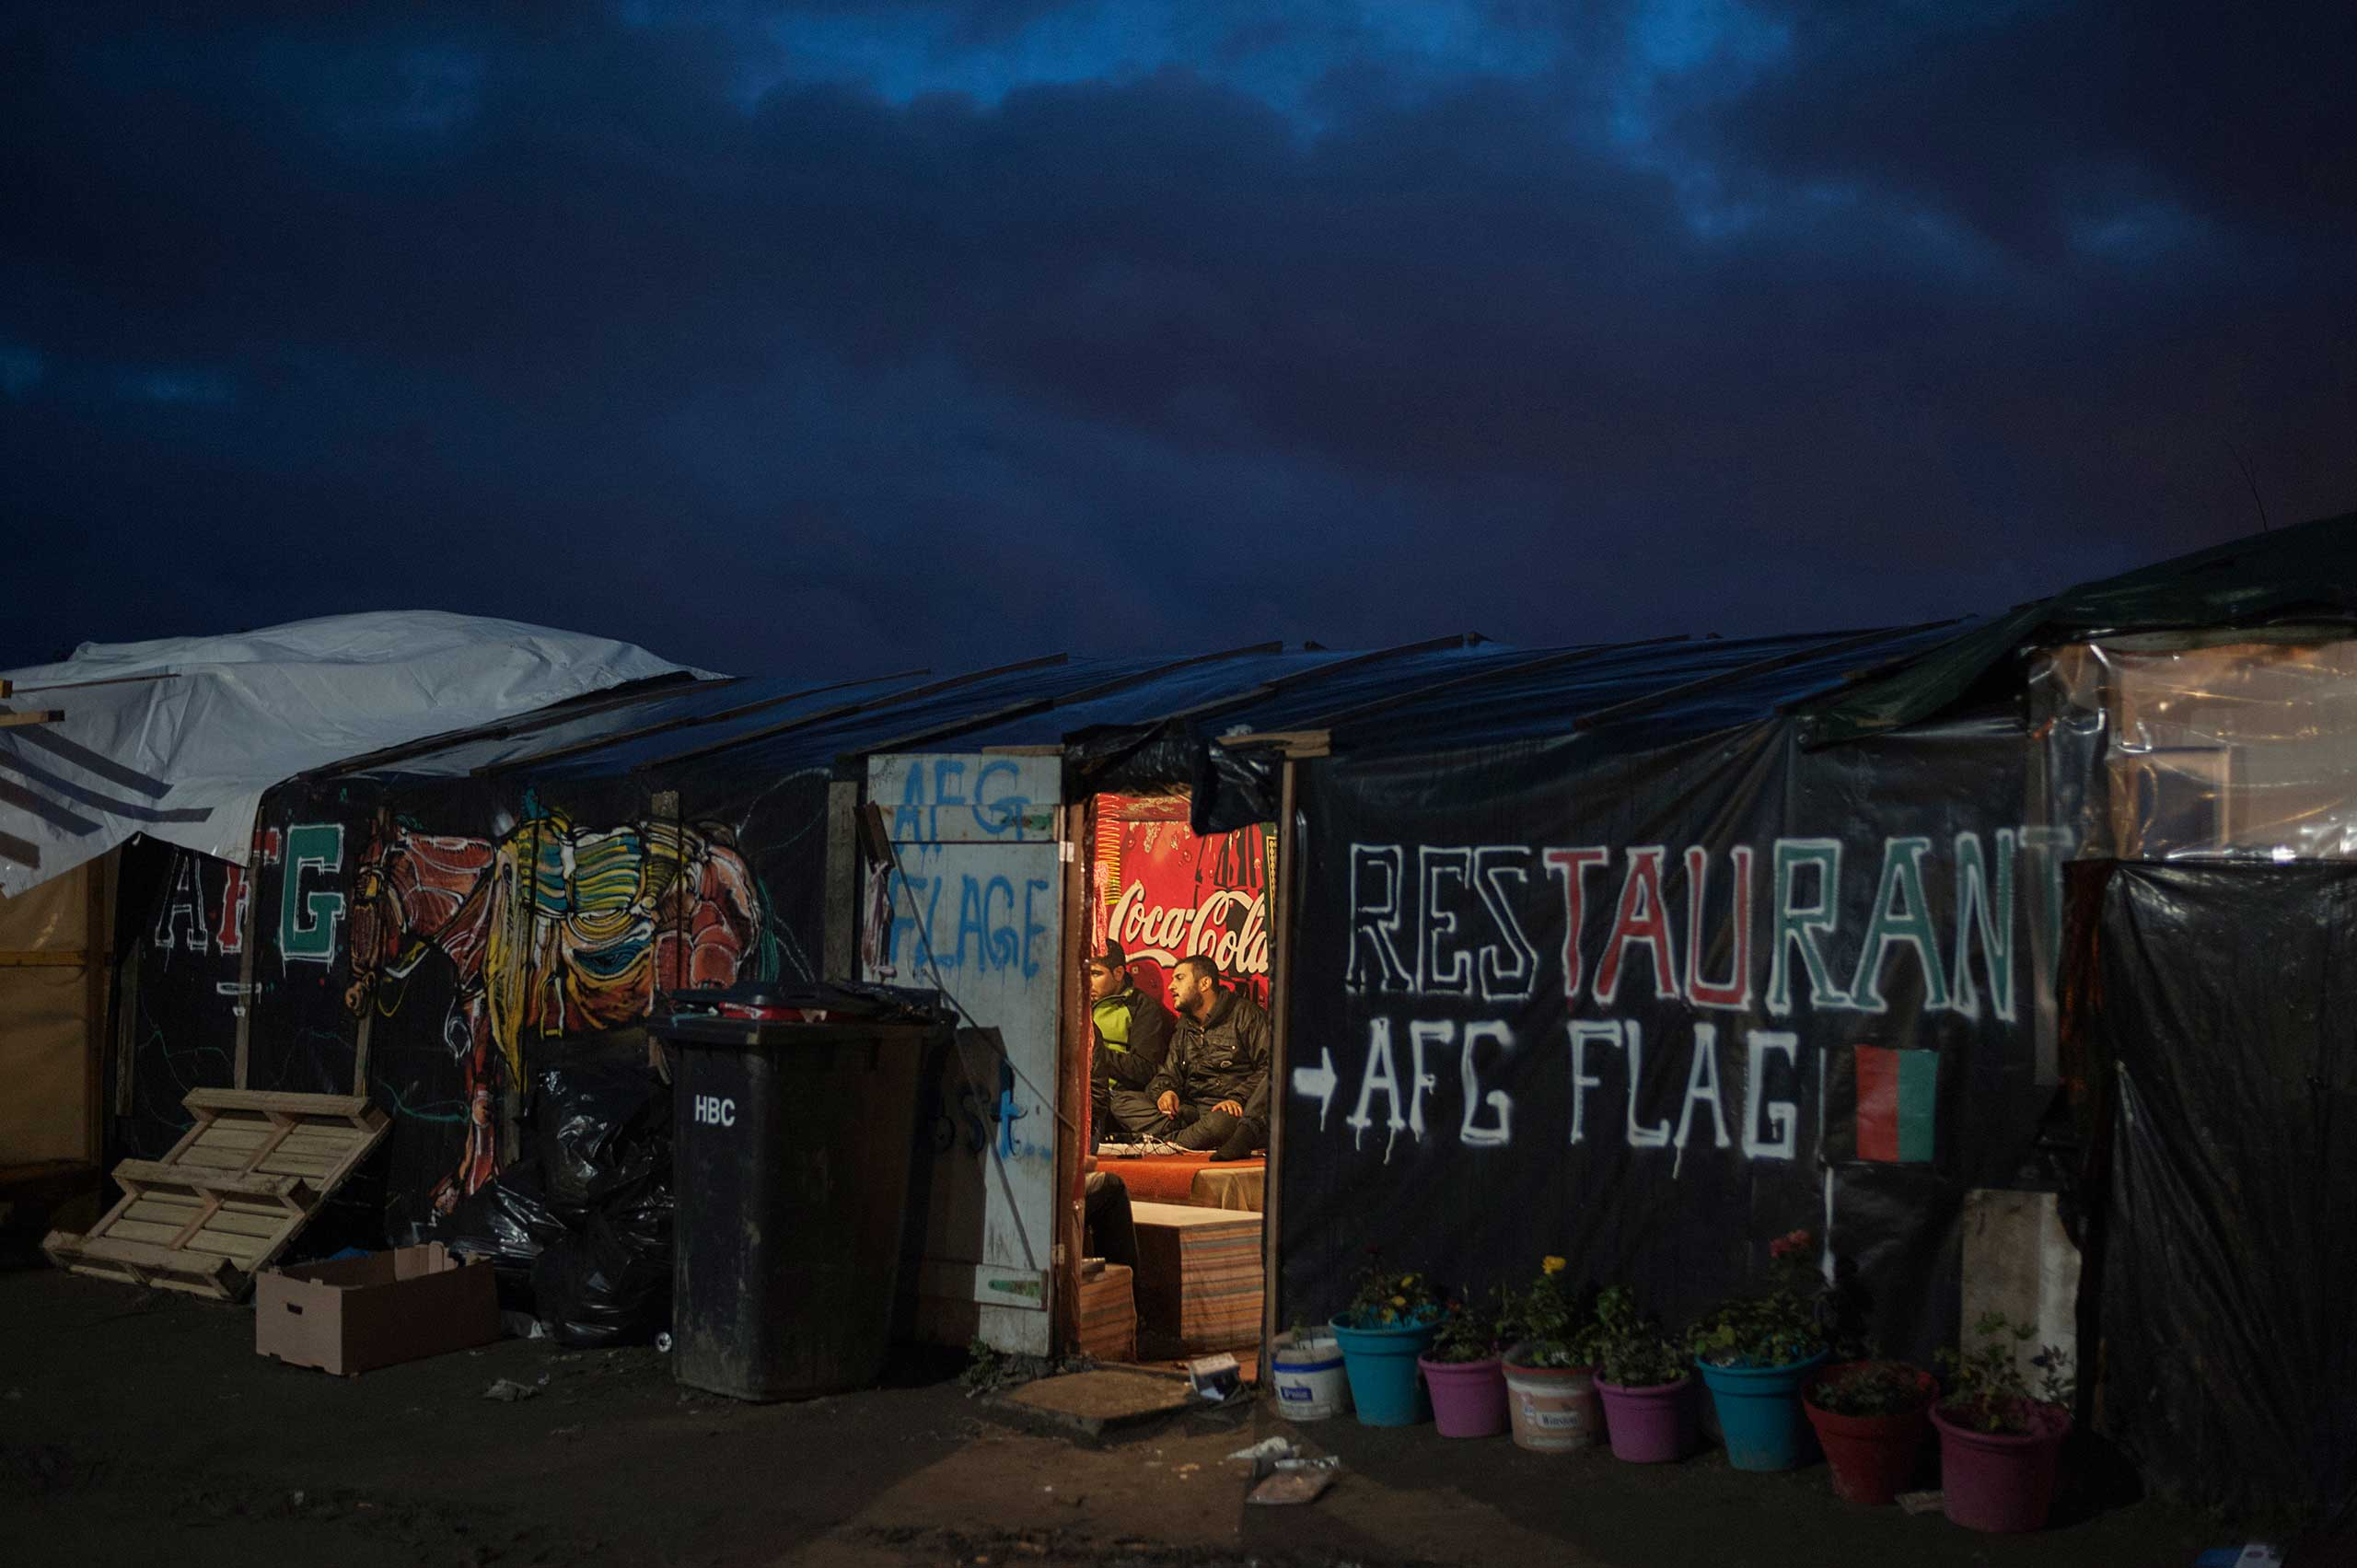 People chatting in an Afghan bar and restaurant in Calais, France on Nov. 7, 2015.